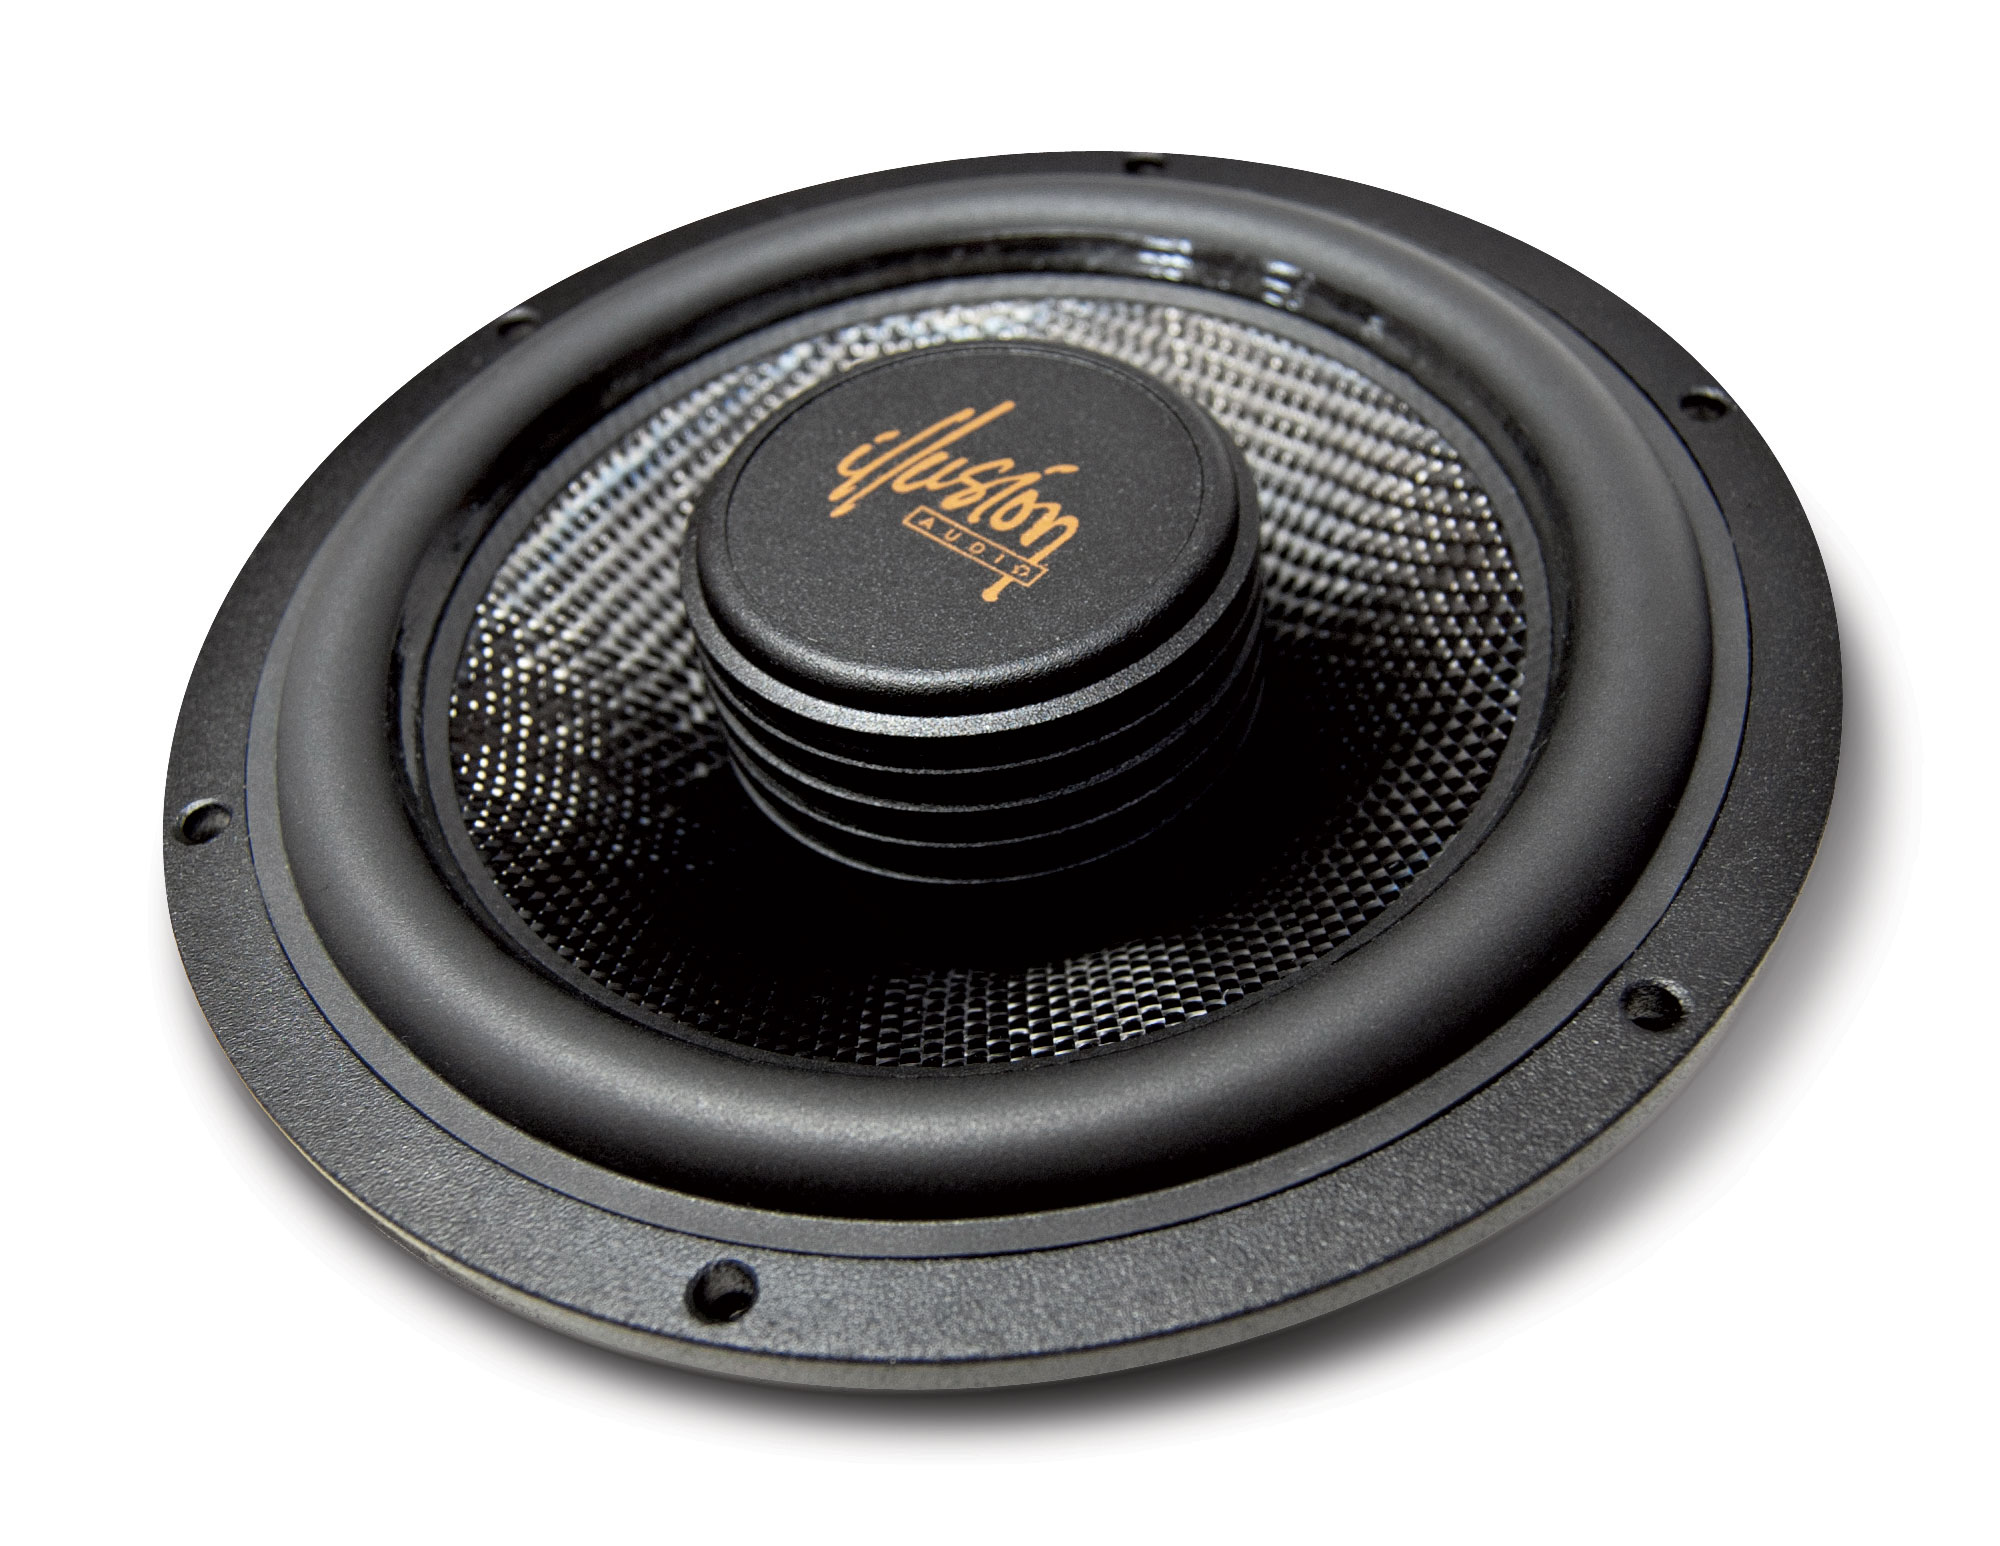 pasmag performance auto and sound illusion audio carbon series on  for illusion audio carbon series c6 component speakers at